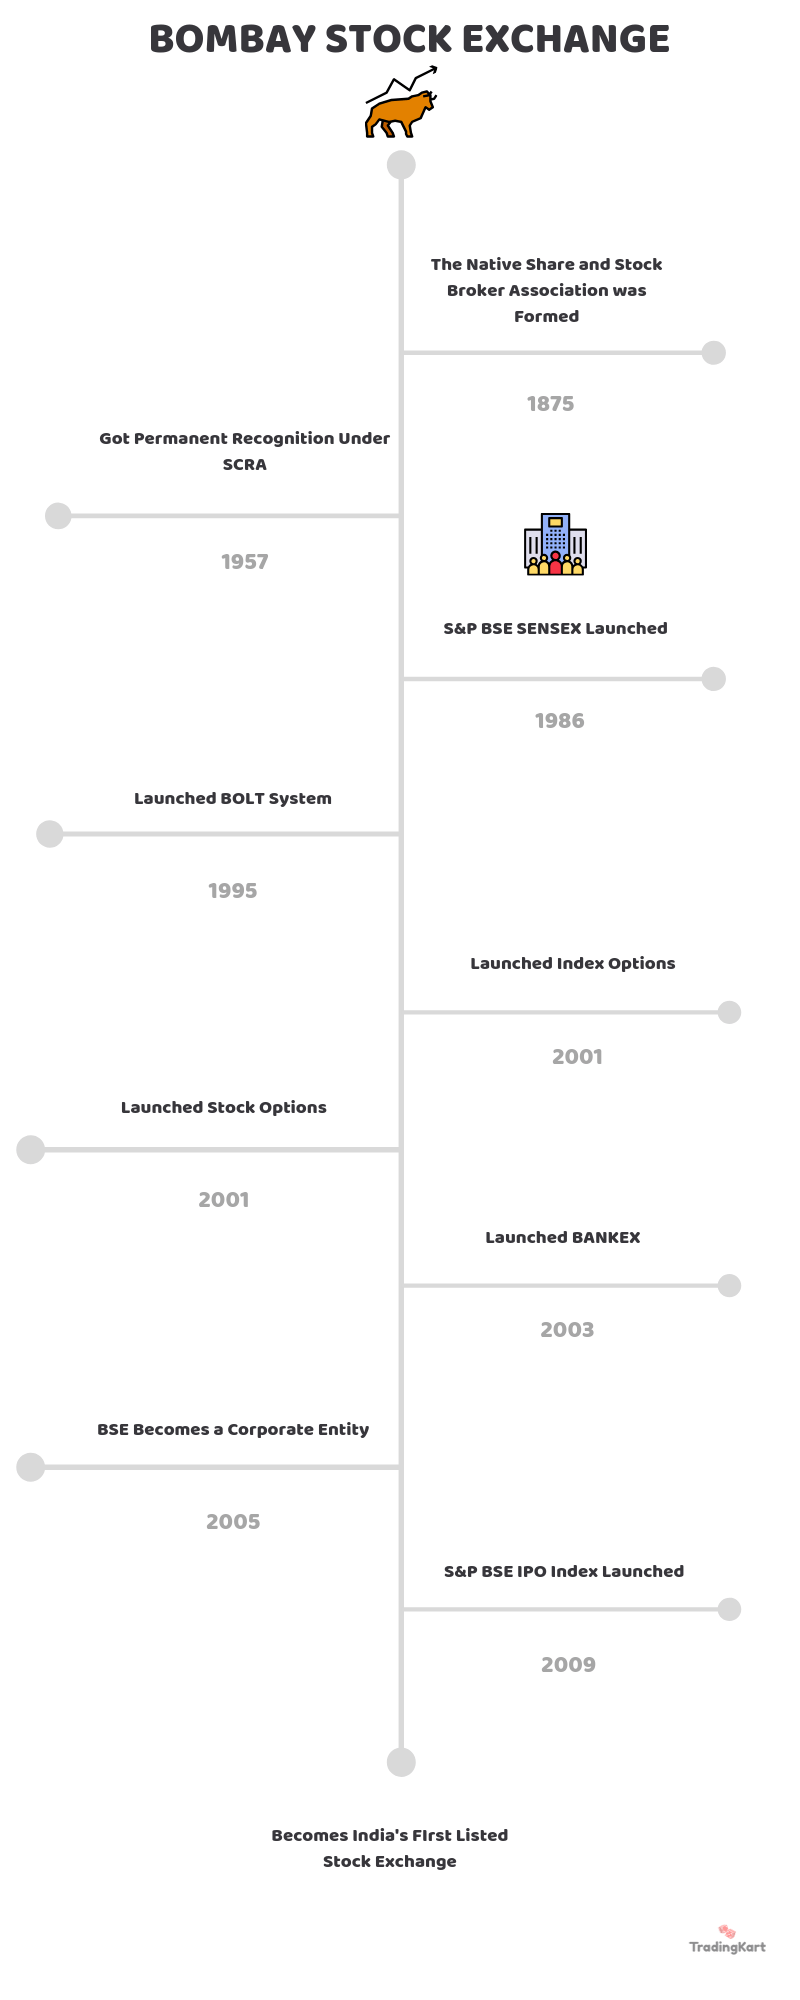 bombay stock exchange timeline